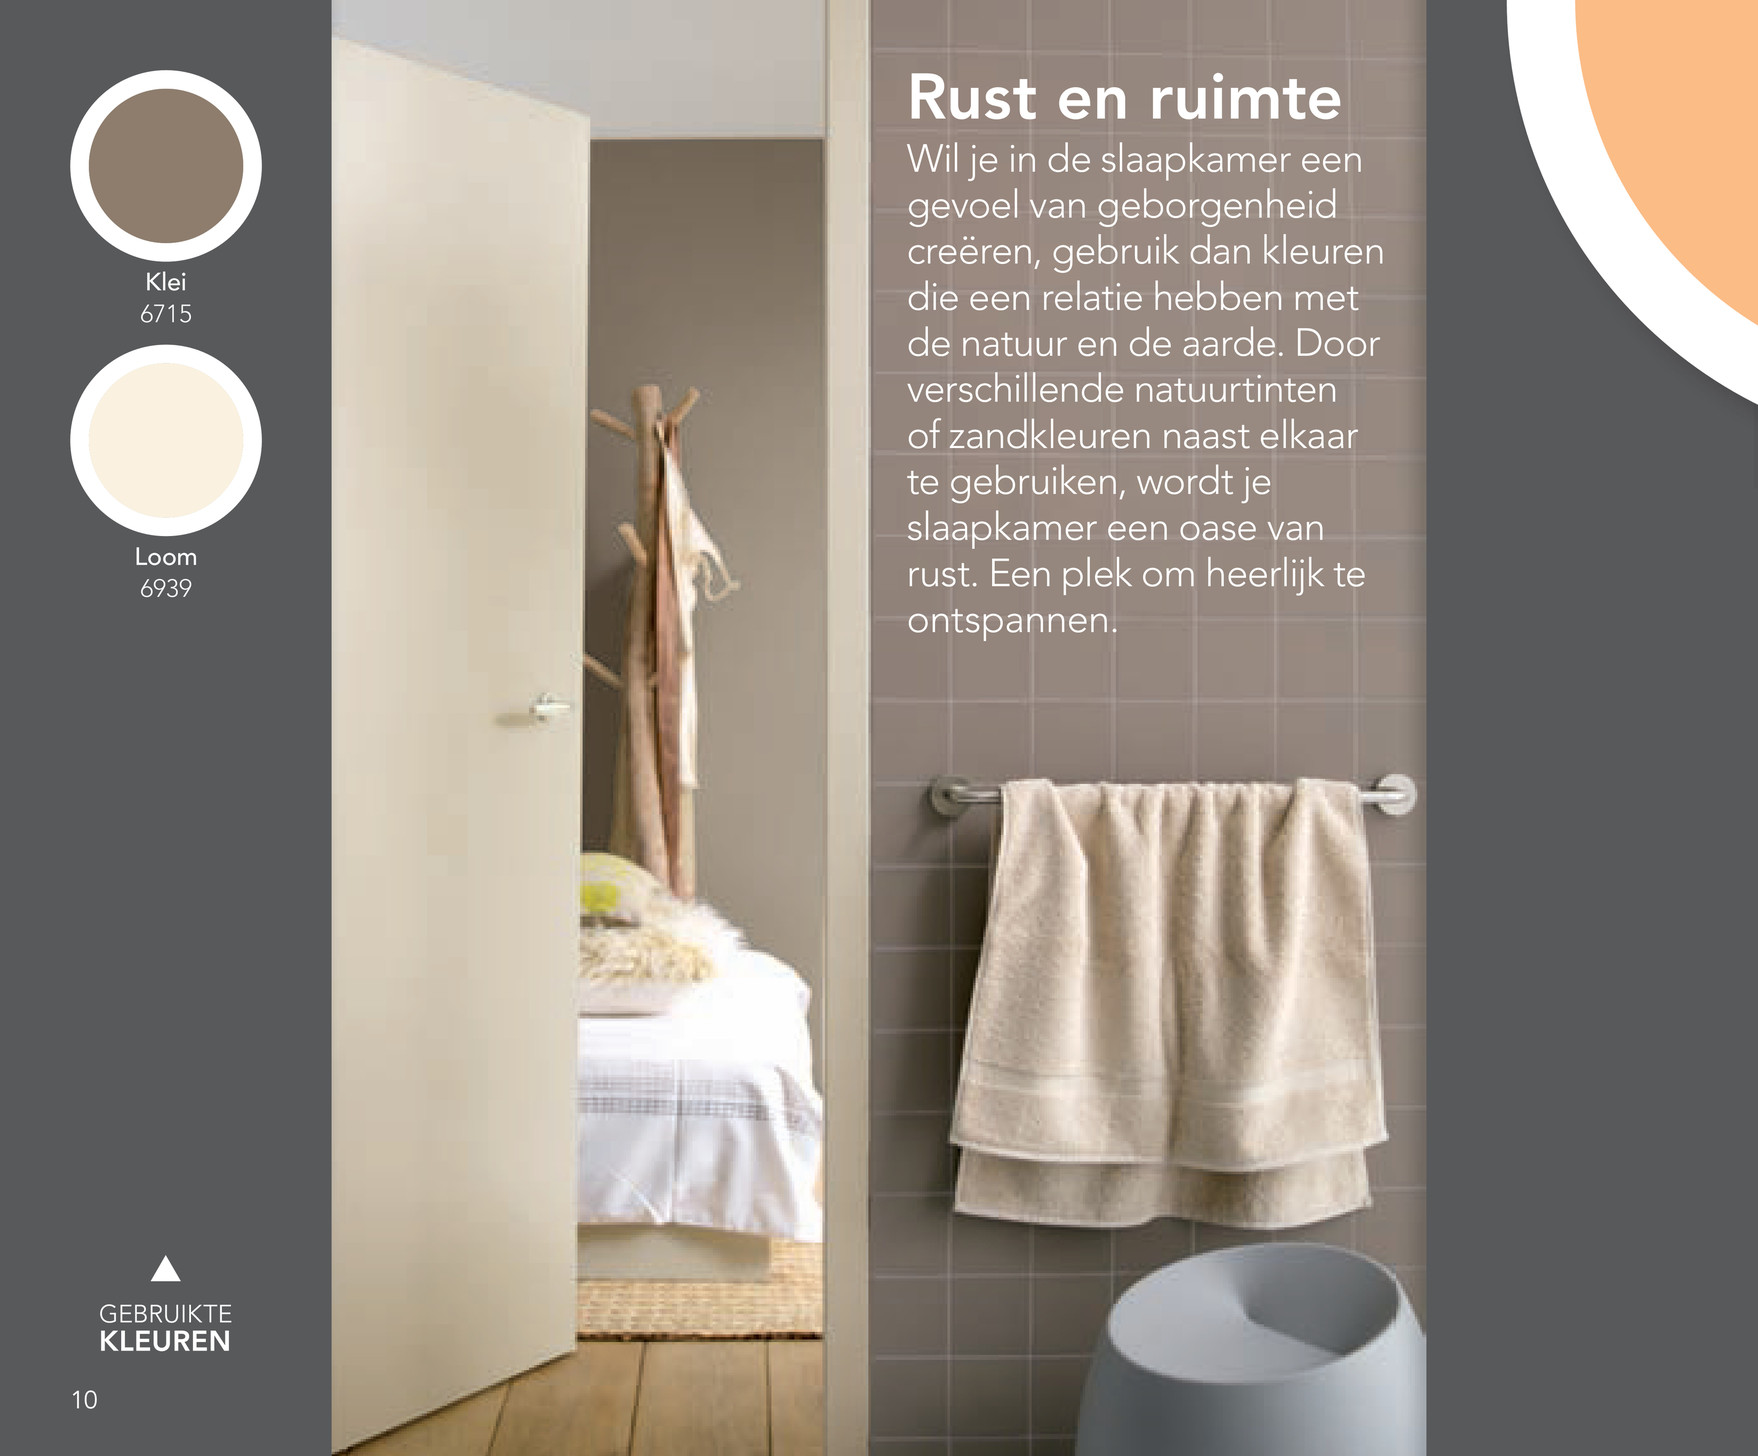 Aarde Net Badkamer Top Histor Nl Histor Perfect Finish Muurverf Pagina With